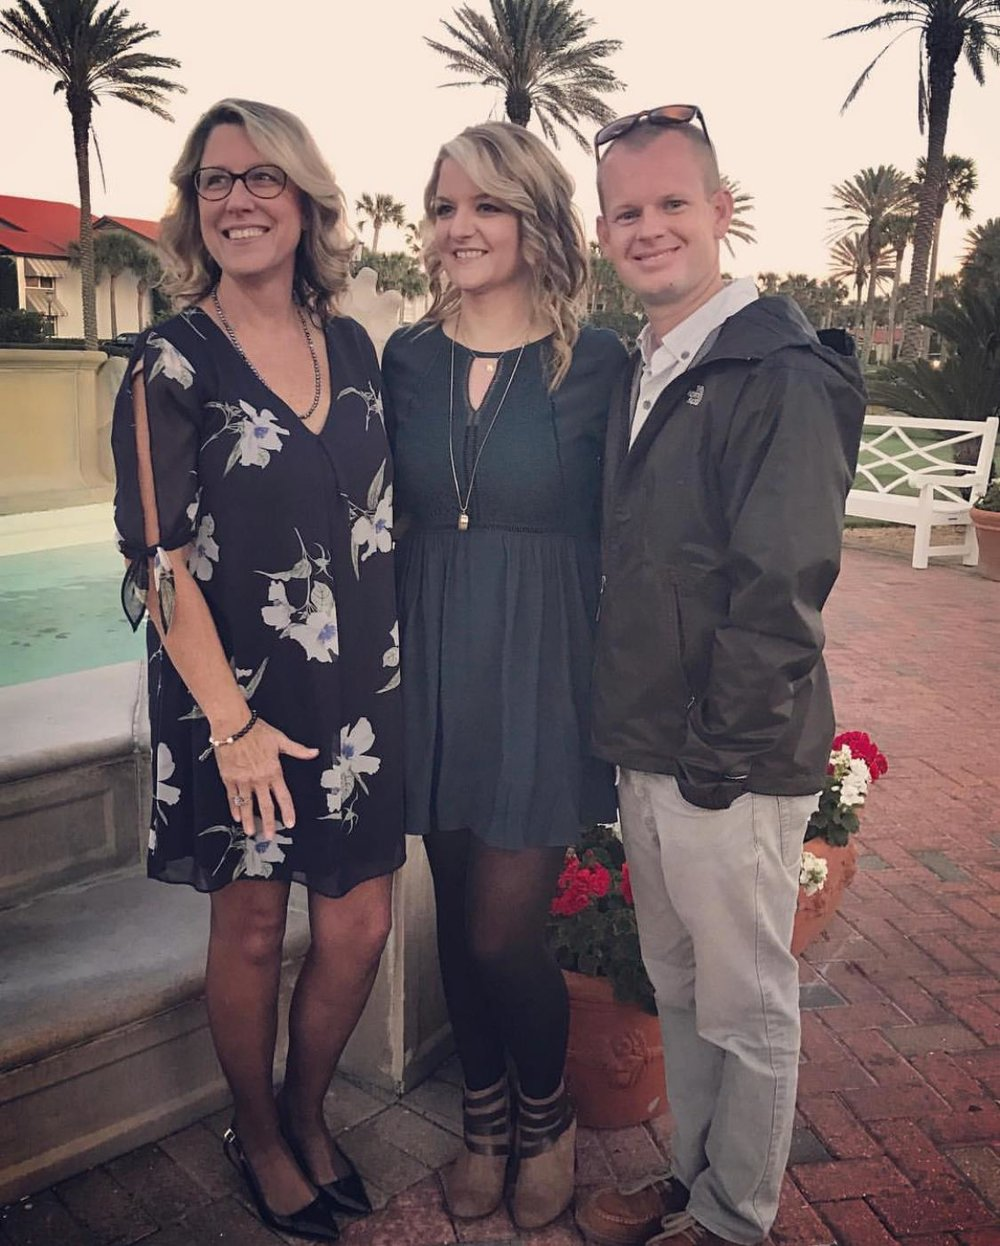 The Dream Team - Carole, Amber & Lucas are the visionaries of GroundSwell Design Co. The love they have for their hometown combined with their skilled design sense is generating waves of impact in Jacksonville Beach, Florida!